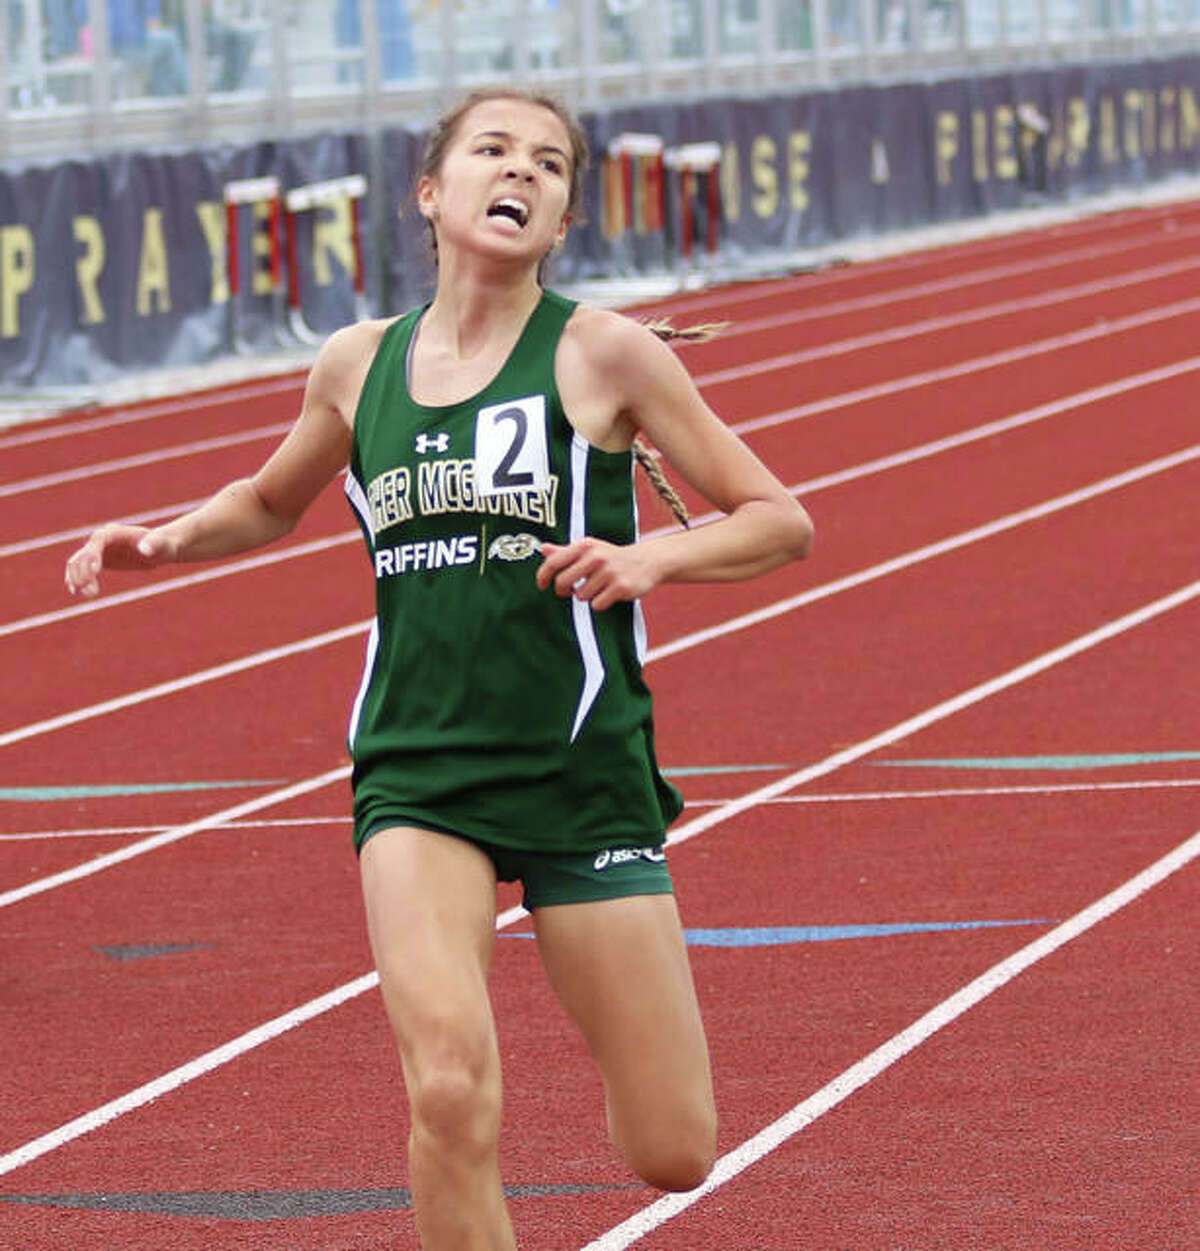 Father McGivney freshman Kaitlyn Hatley looks to the clock and her PR time crossing the finish line to win the 800 meters on Wednesday at the Althoff Class 1A Sectional in Belleville.